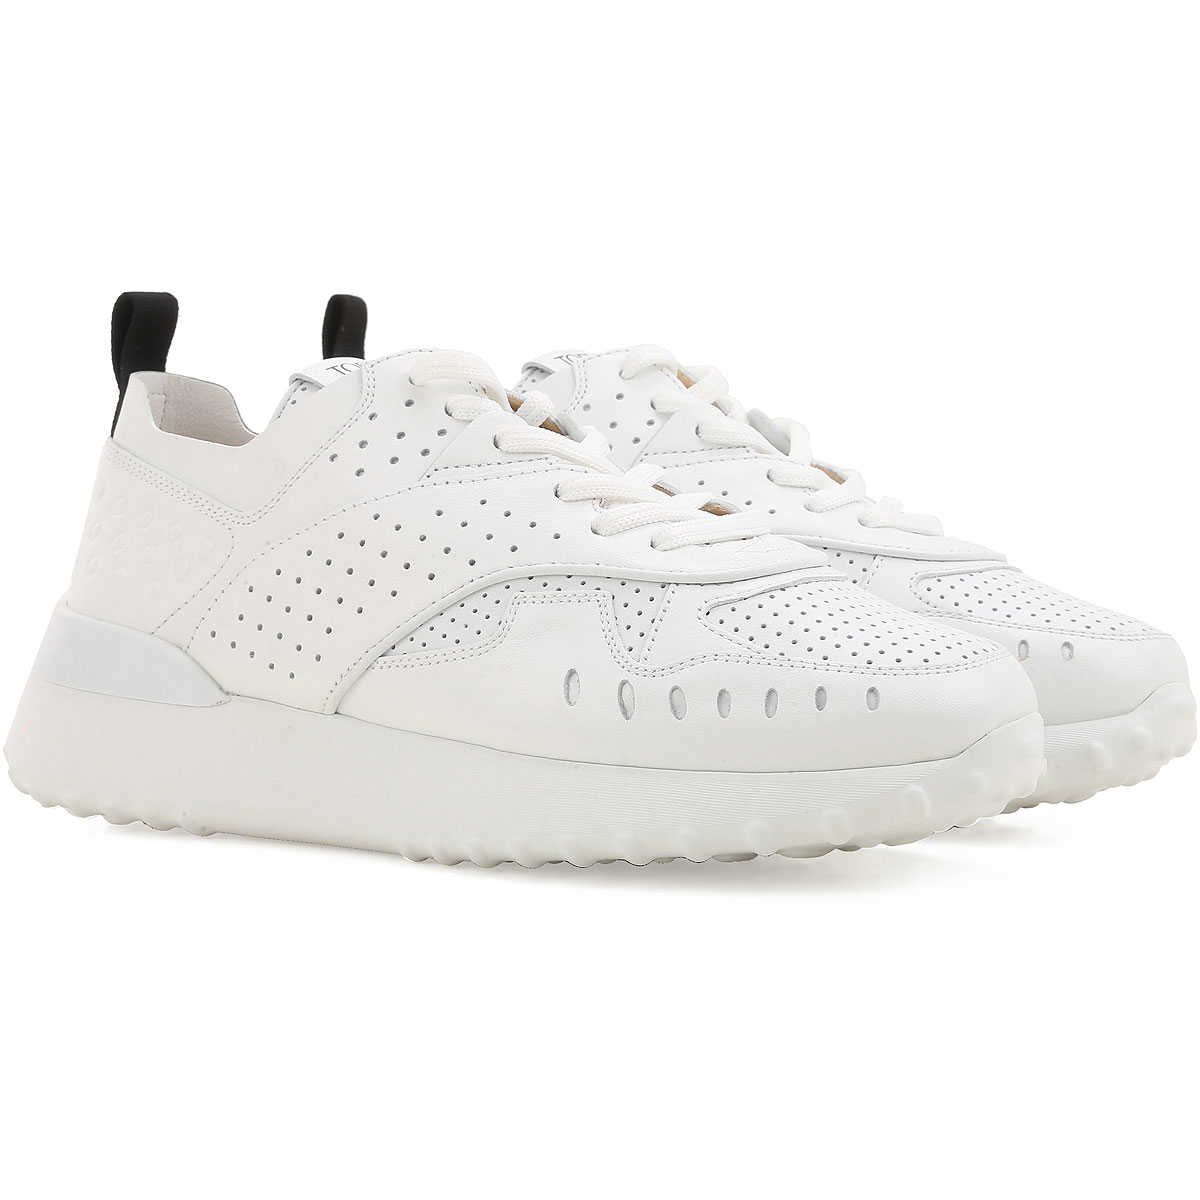 Tods Sneakers for Women, White, Leather